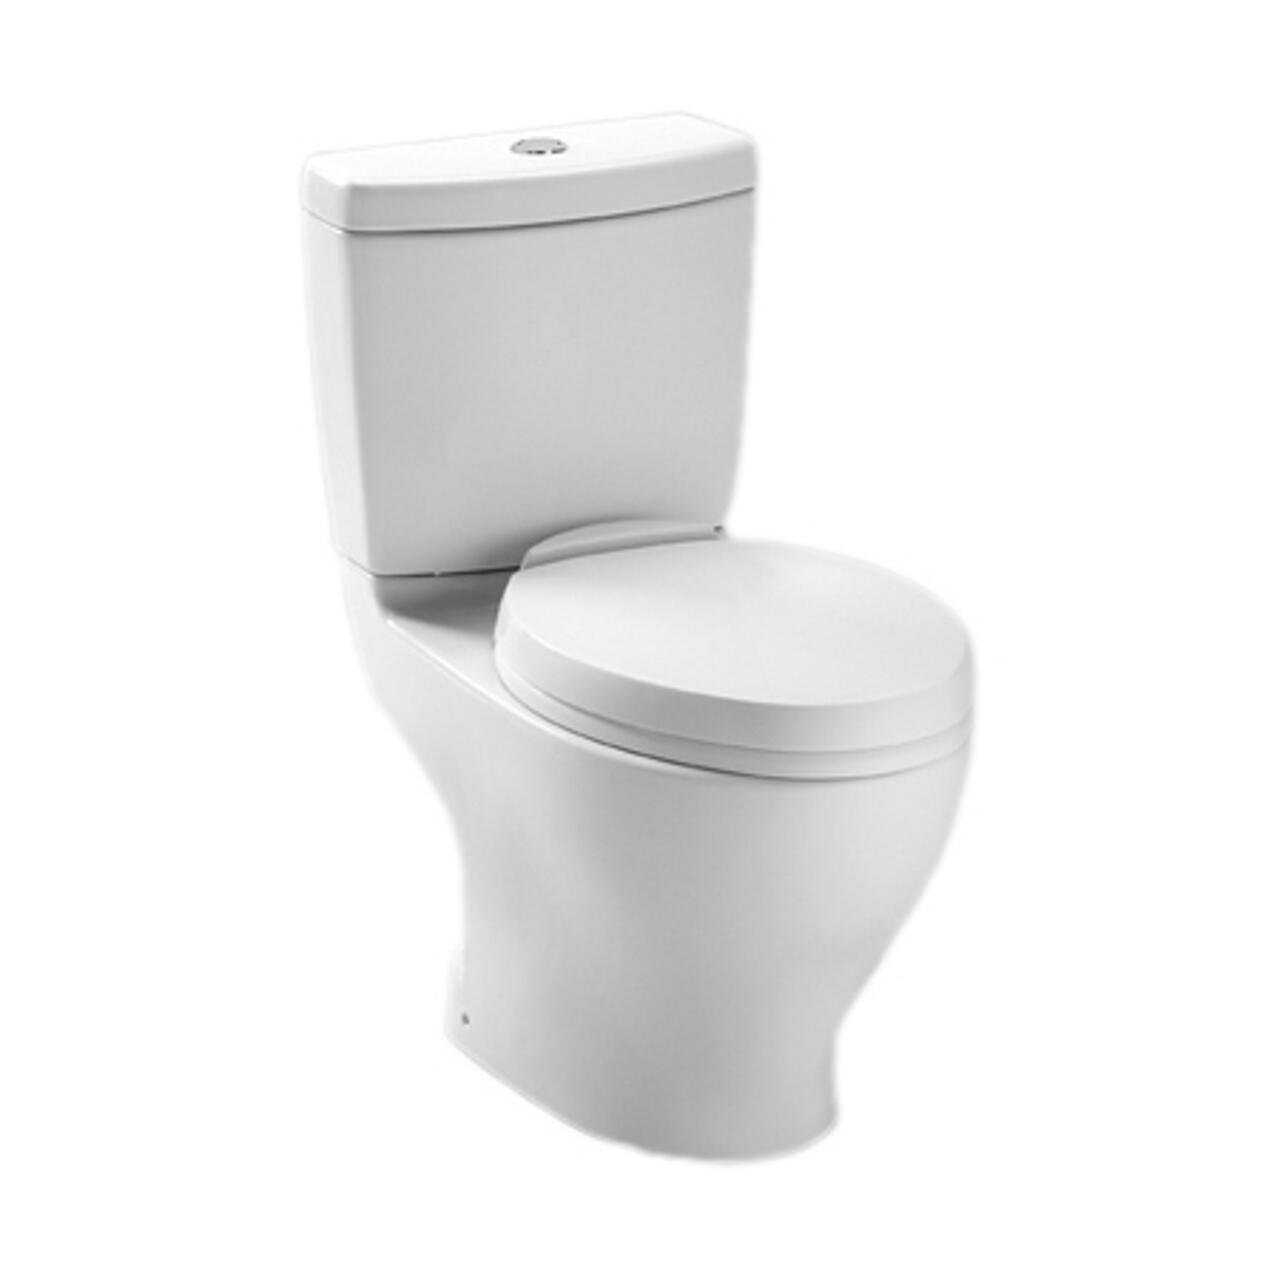 Best TOTO Toilet Reviews: Editor\'s Pick Of The Year 2018 - Shop Toilet